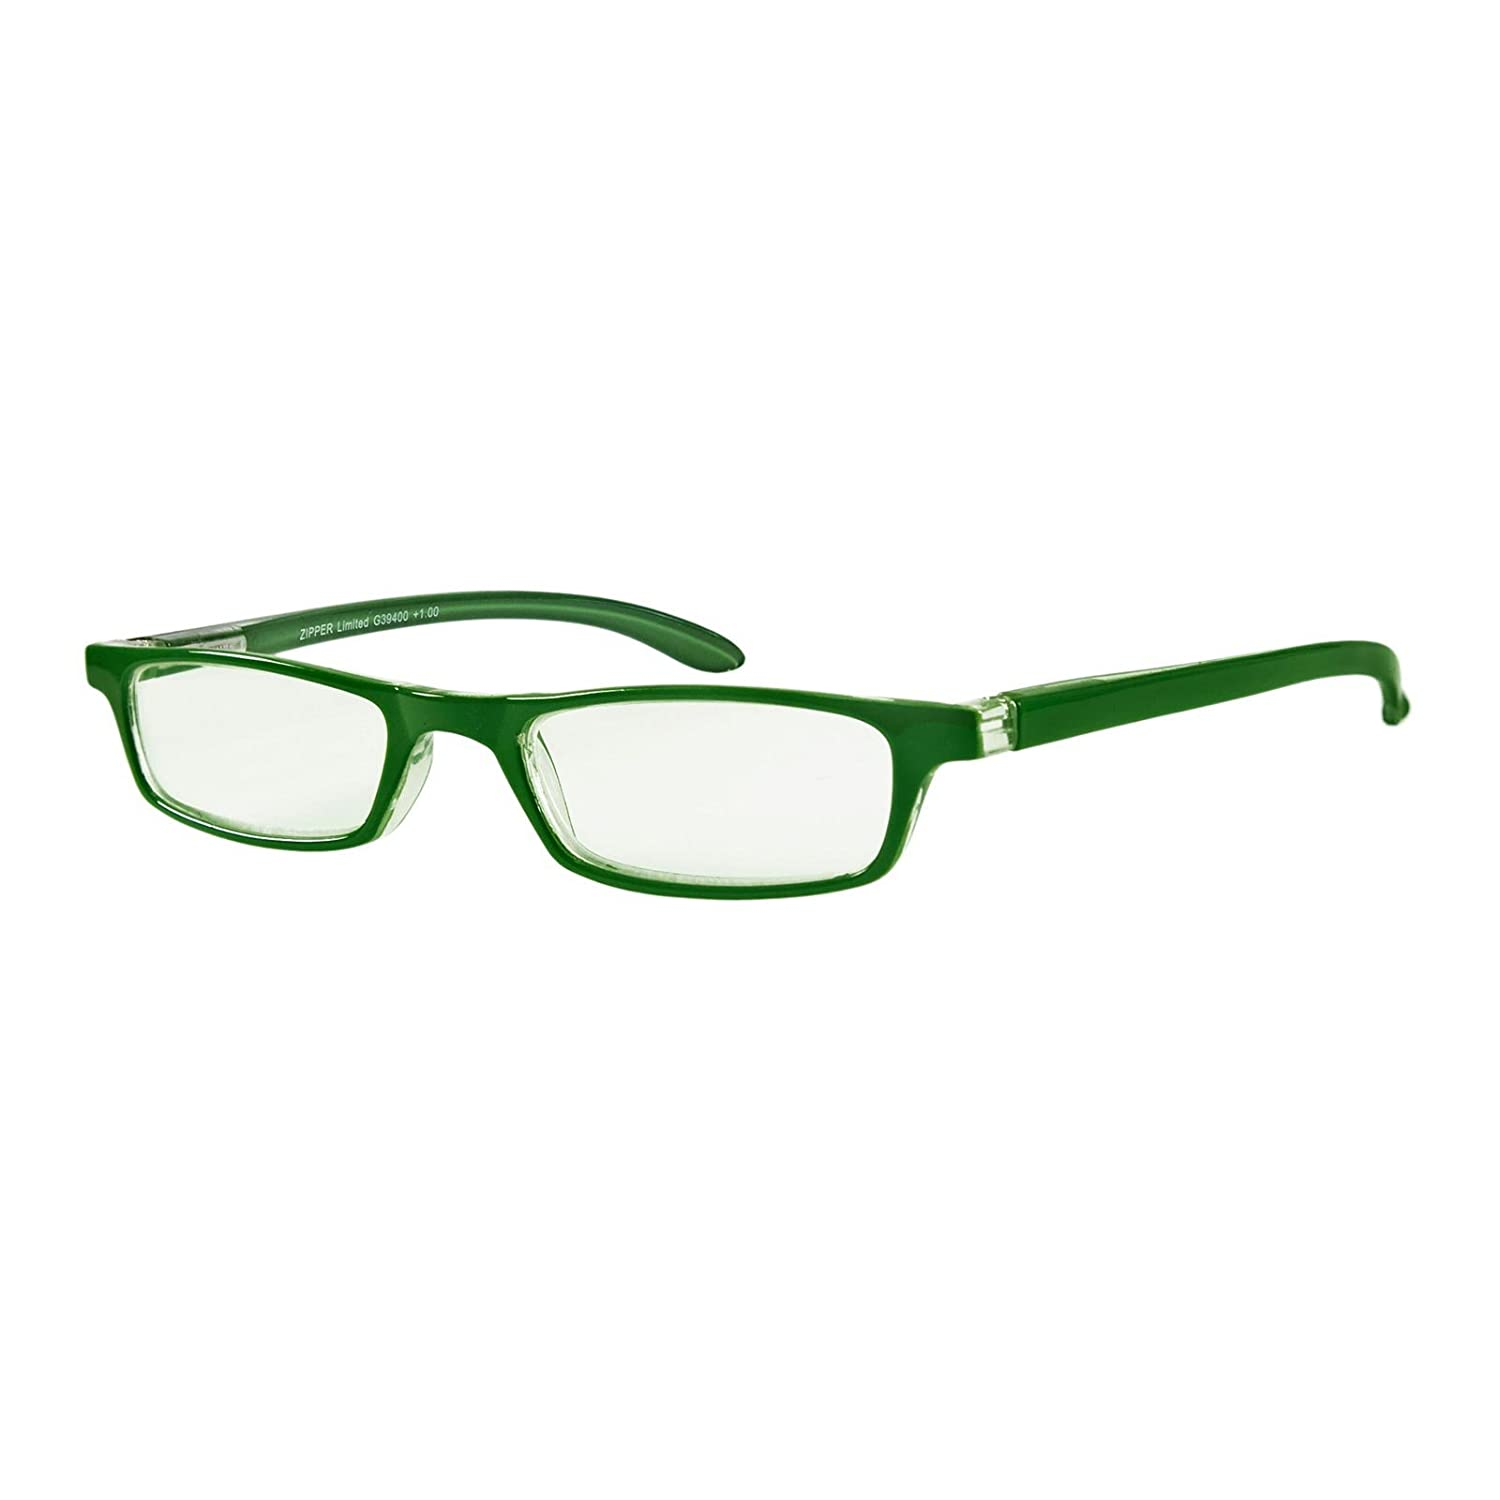 c868d3af3bb8 Amazon.com  I NEED YOU Rectangular Zipper Limited Reading Eyeglasses Green  Designer Frame For Men   Women With Spring Hinge   Plastic Lenses -  Prescription ...